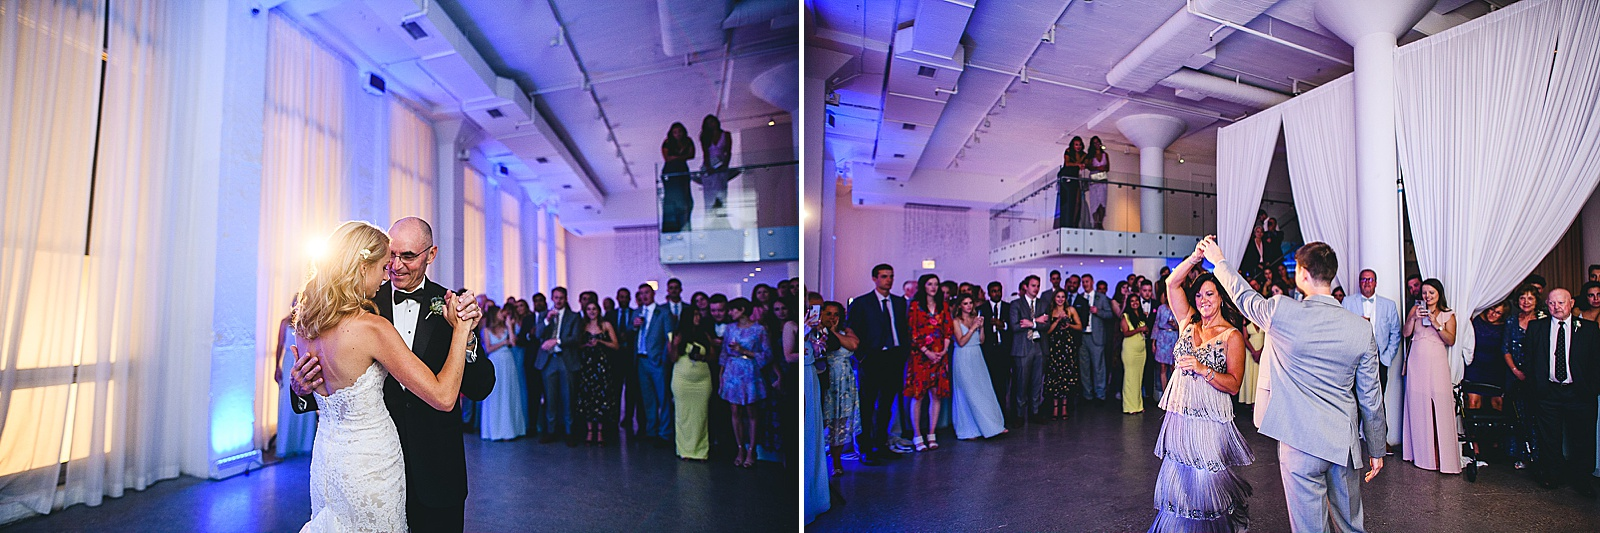 50 dancing - Audrey + Jake's Beautiful Chicago Wedding at Chez